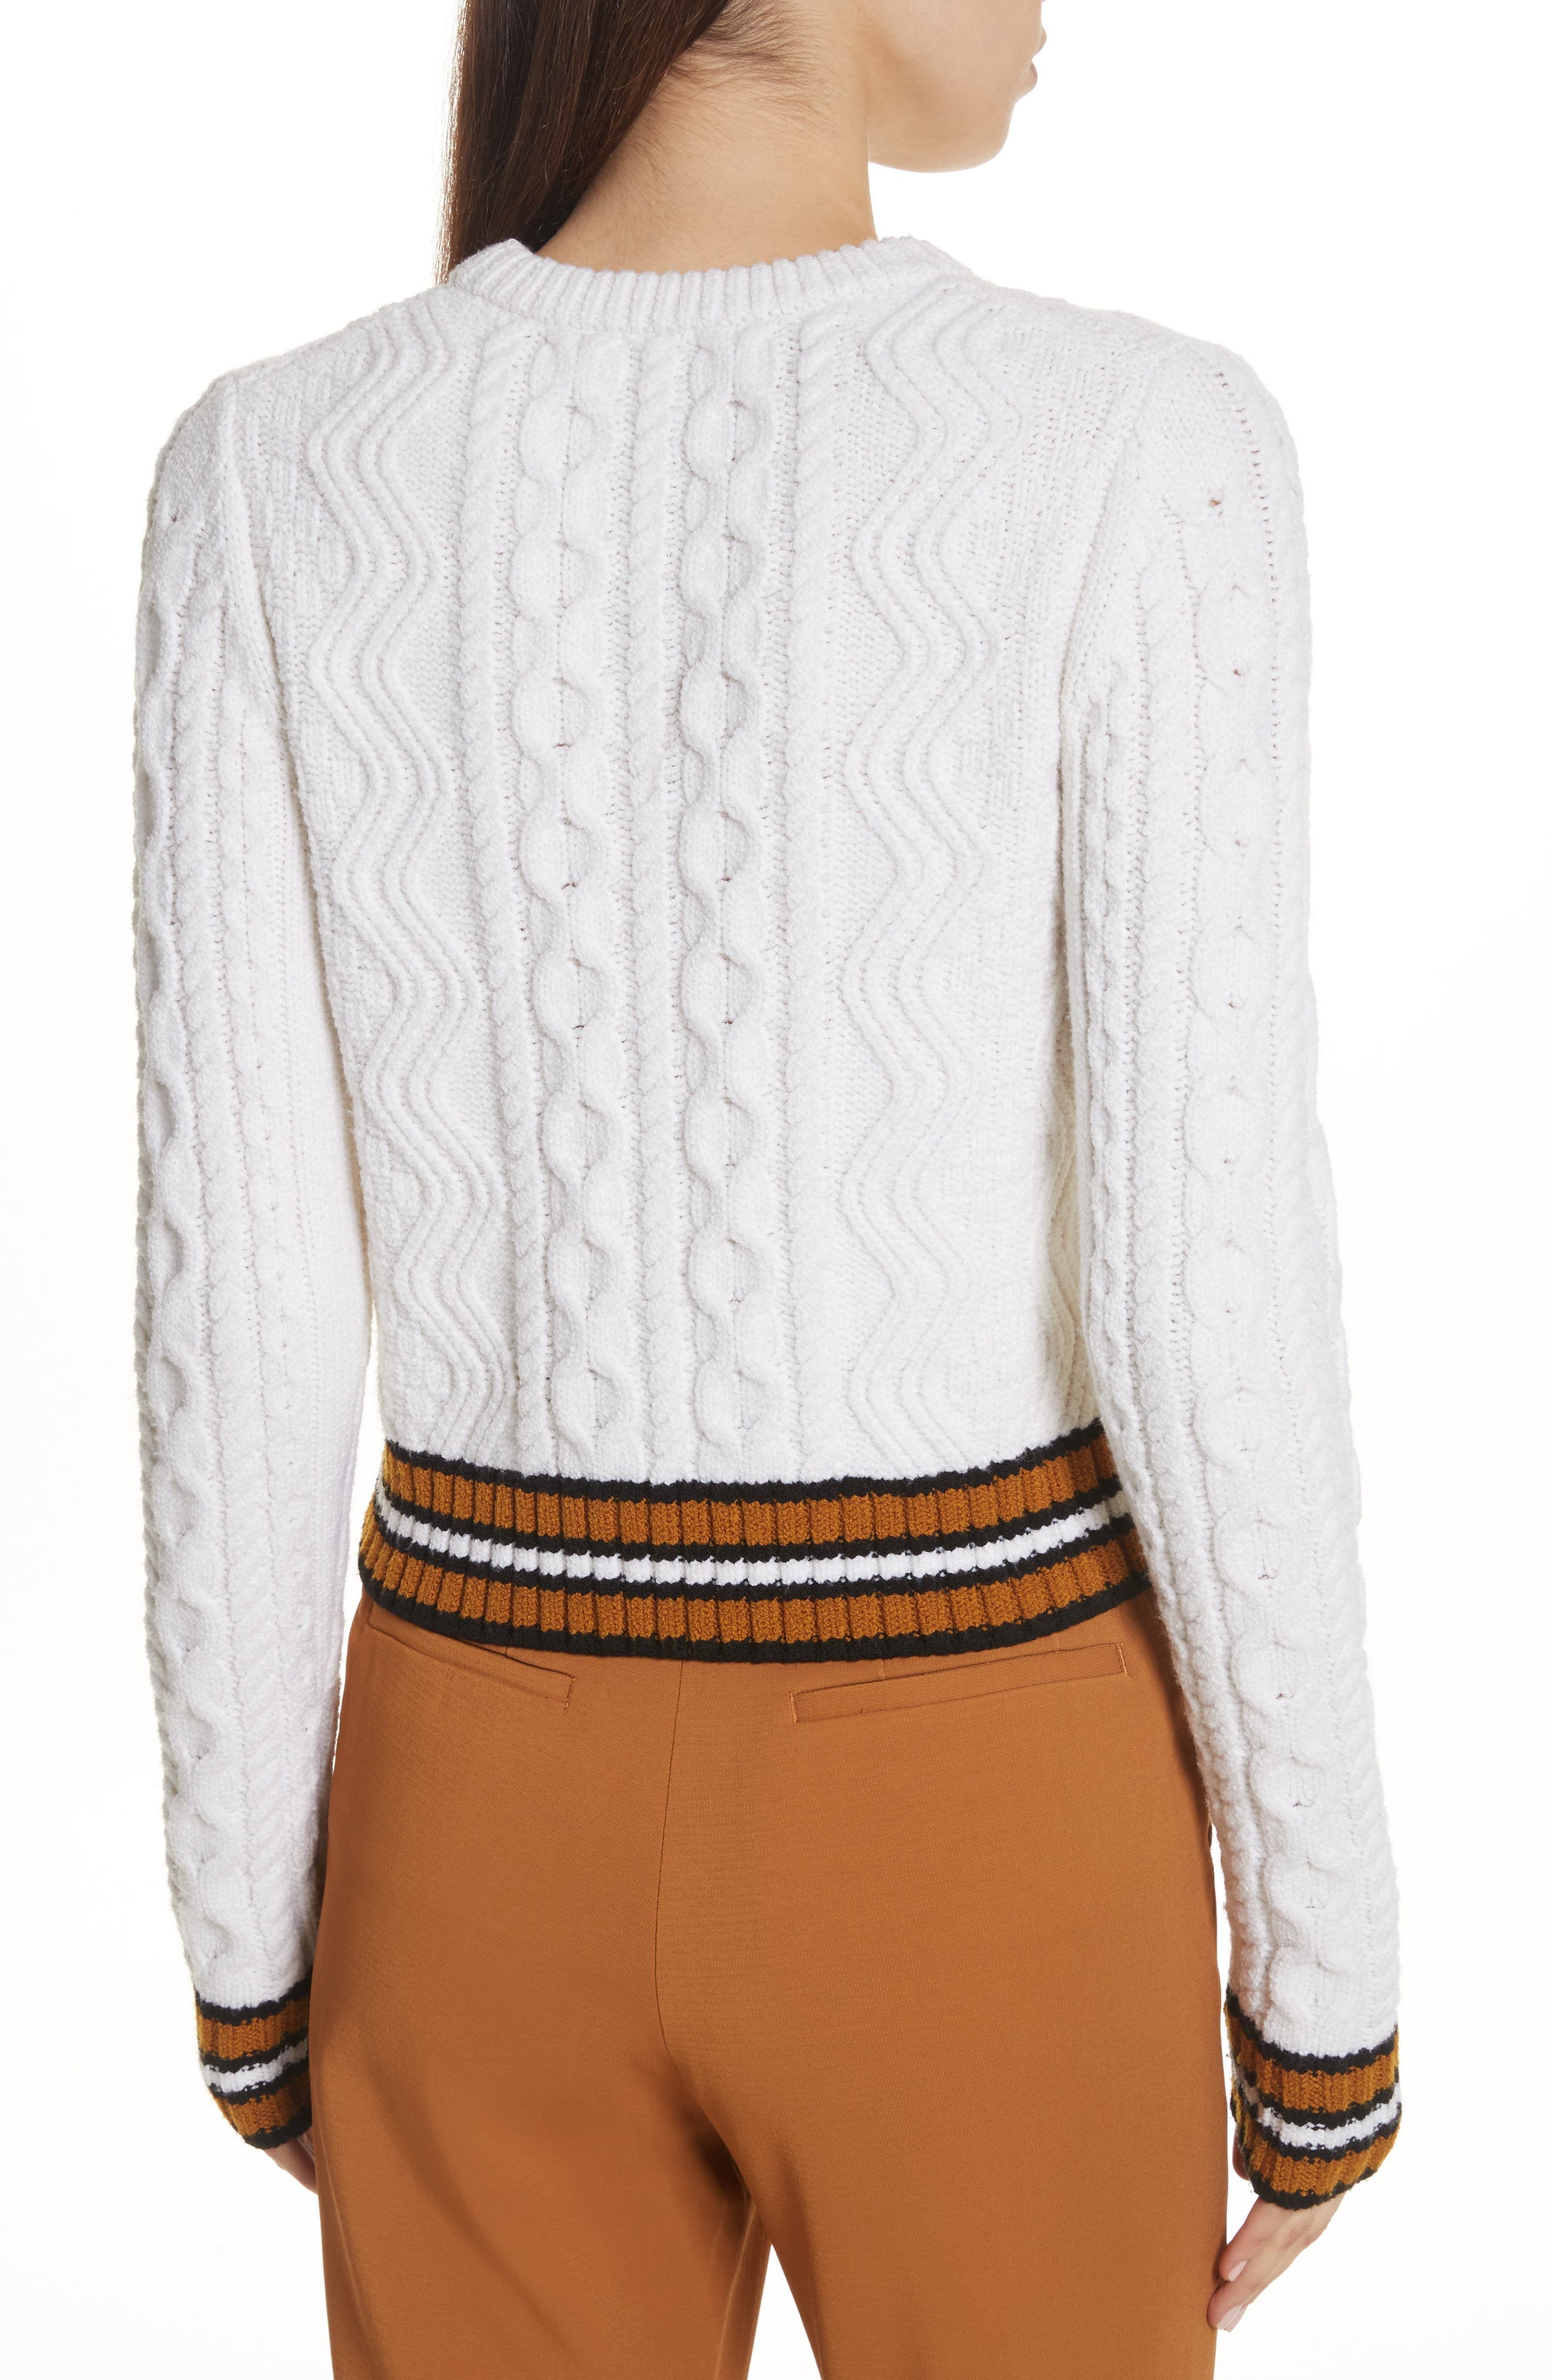 Alpha Cable Knit Sweater,                             Alternate thumbnail 3, color,                             White